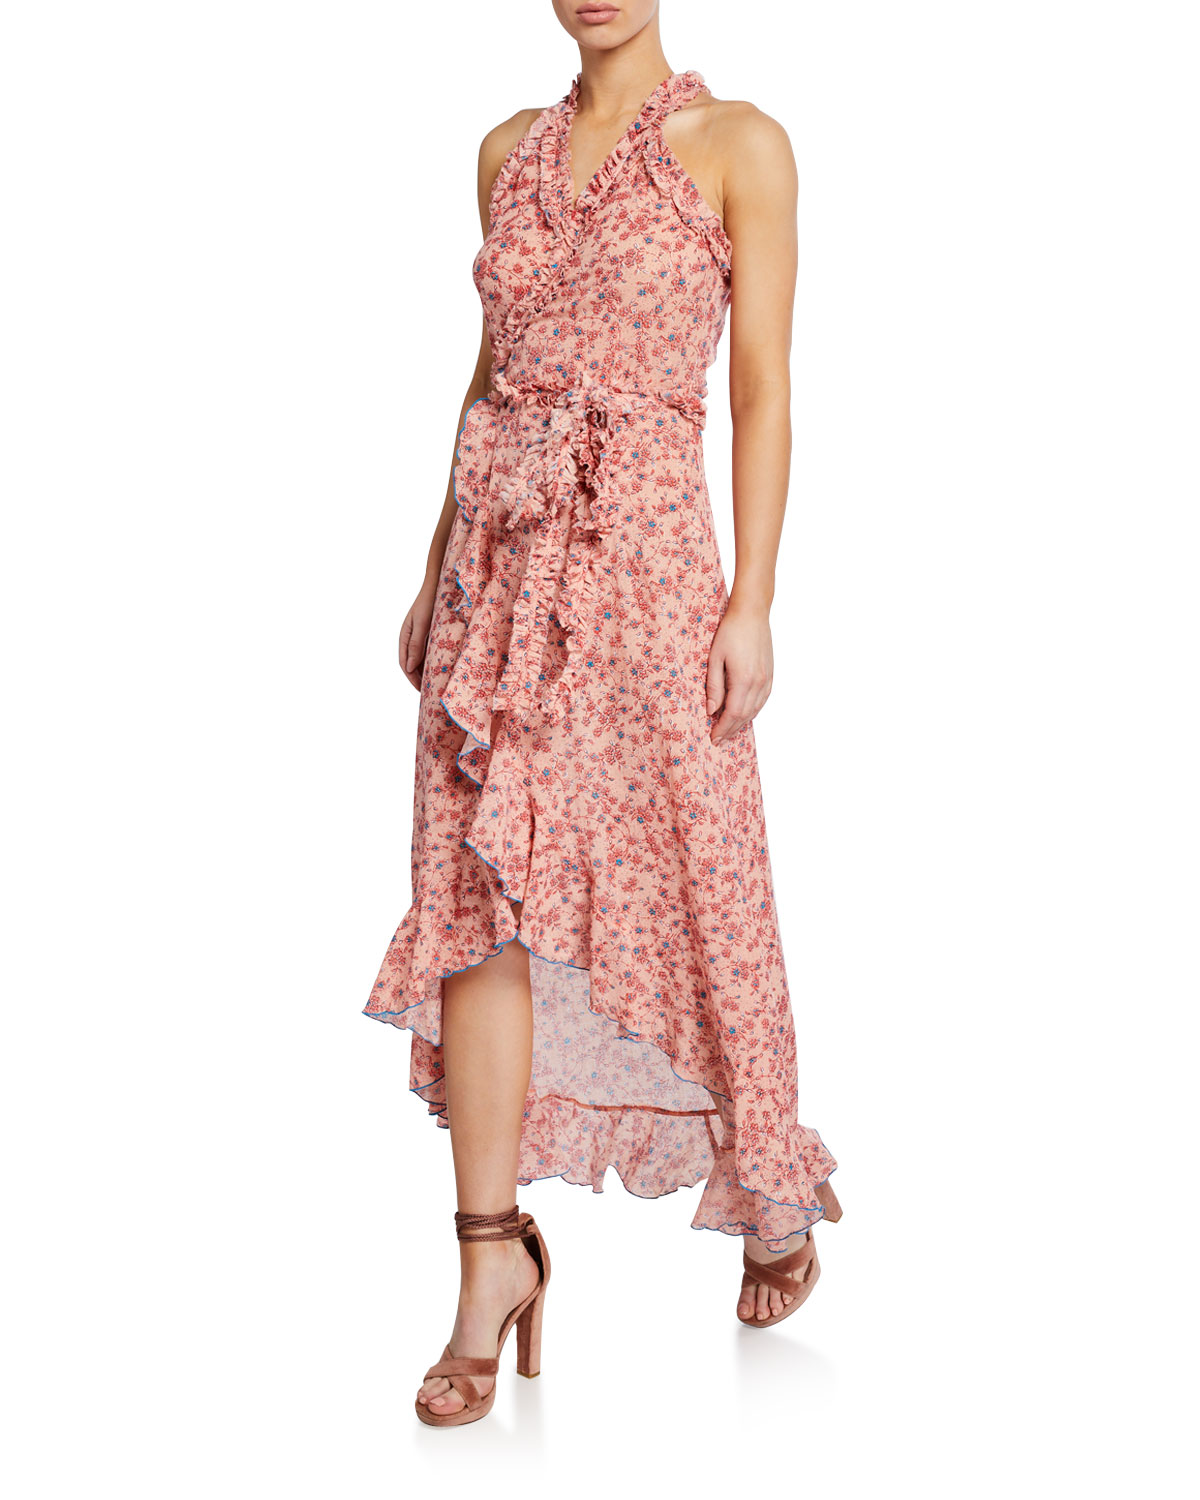 d6cf55f453 Poupette St Barth Tamara Ruffled Long Dress | Neiman Marcus